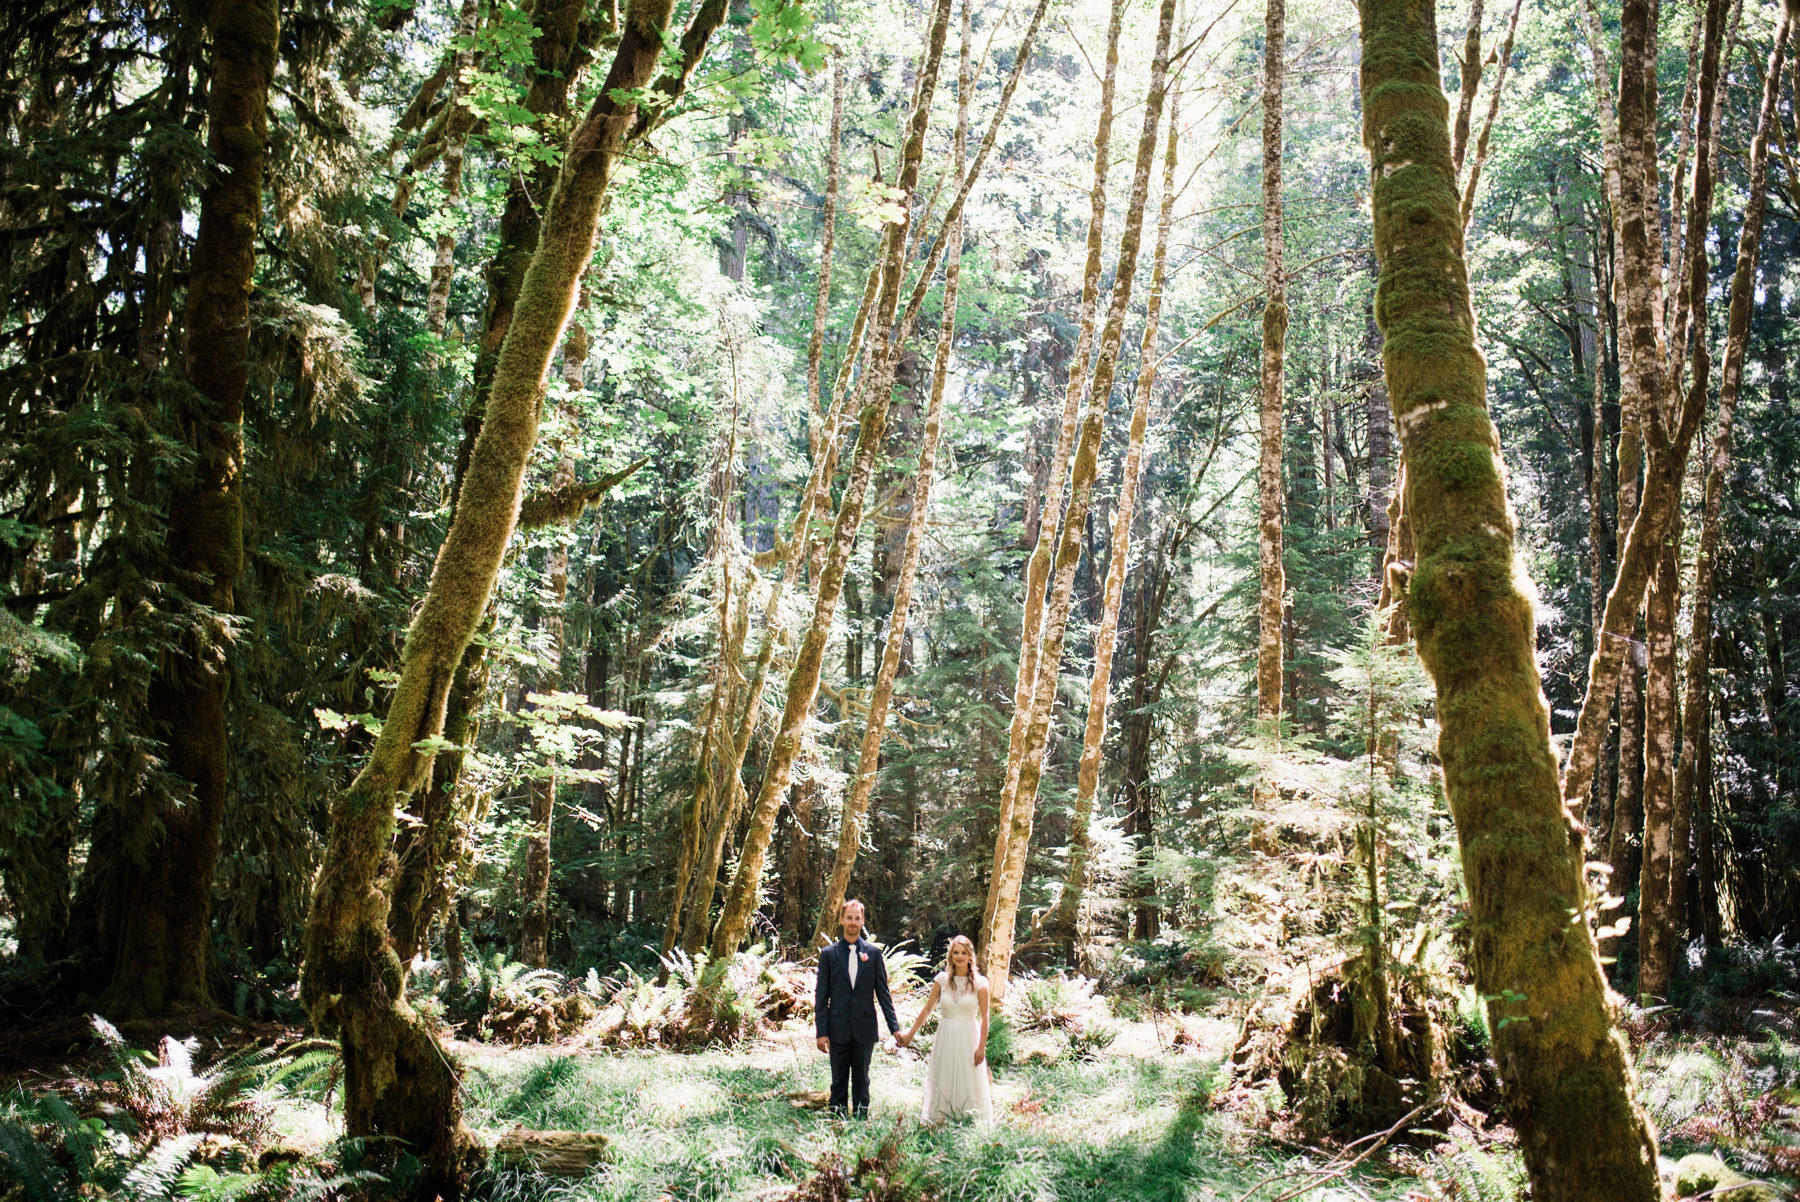 162-fine-art-film-wedding-portraits-at-nature-bride-near-the-lake-crescent-lodge.jpg